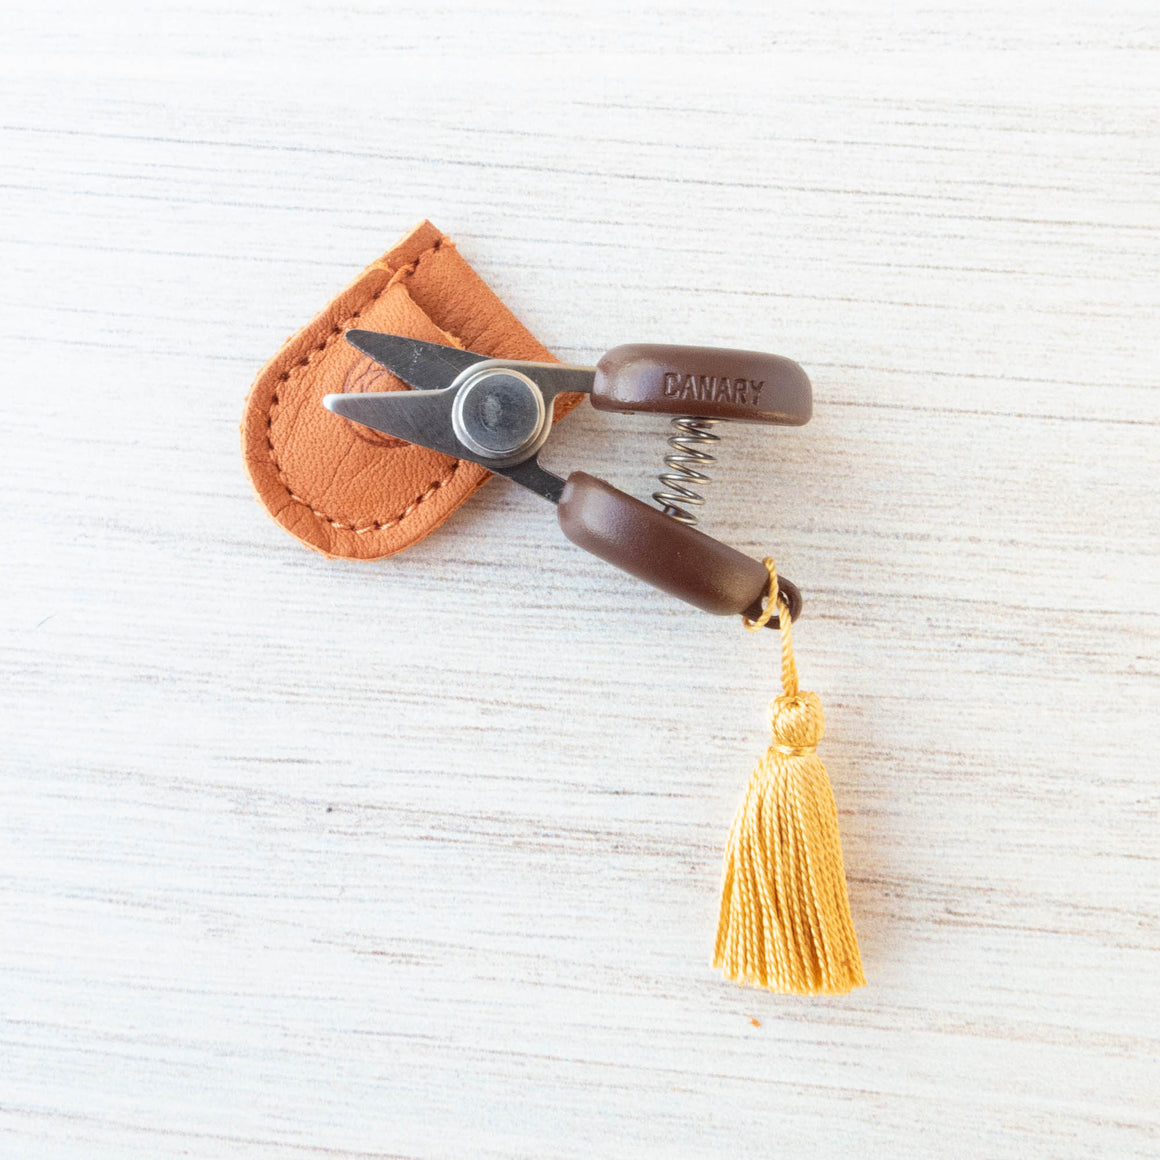 Mini Japanese Thread Snips with Leather Sheath Scissors - Snuggly Monkey